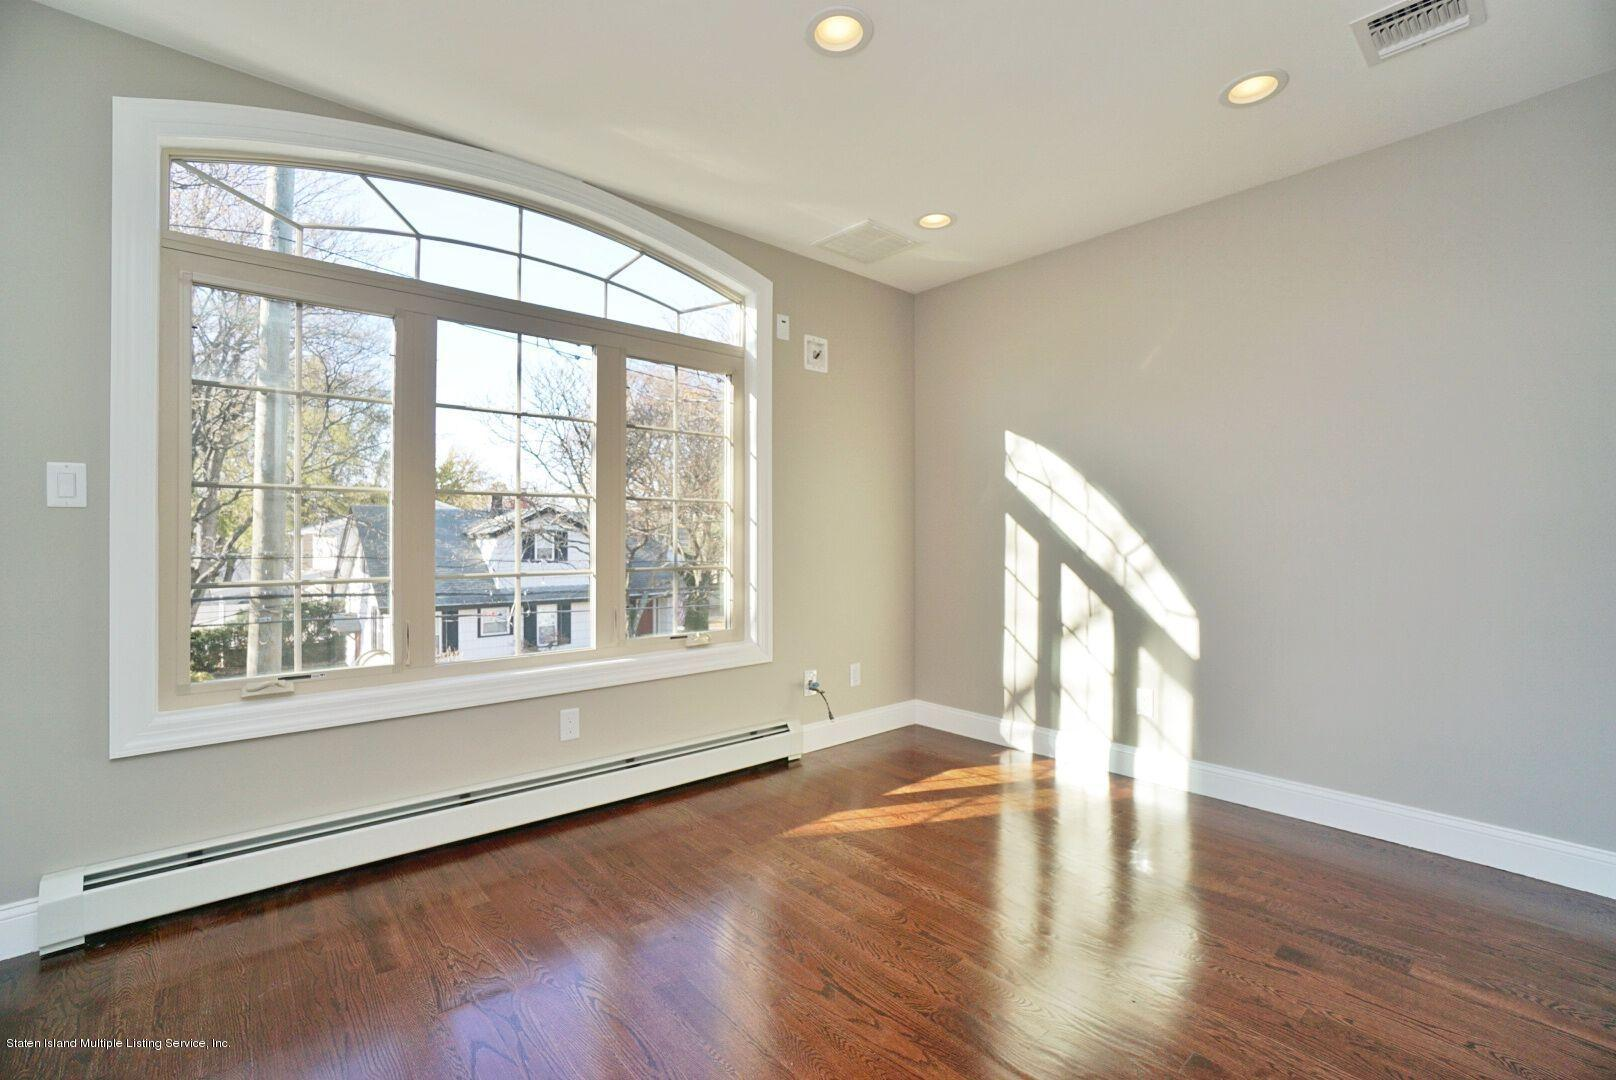 Single Family - Detached 165 Woolley Avenue  Staten Island, NY 10314, MLS-1128875-39